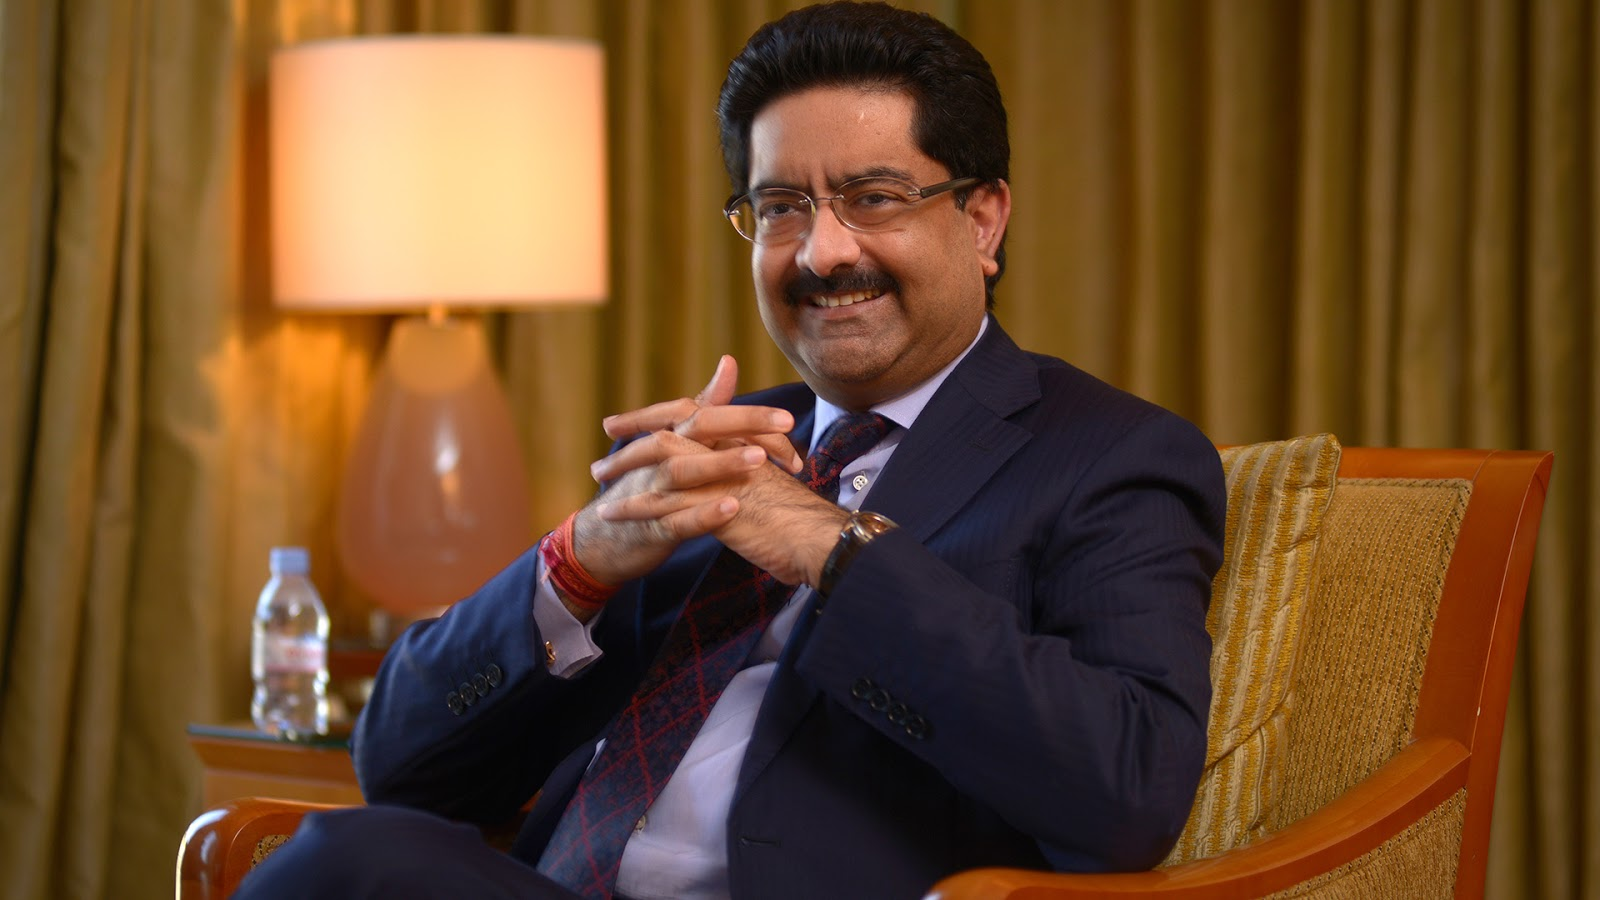 Kumarmangalam Birla richest Indian